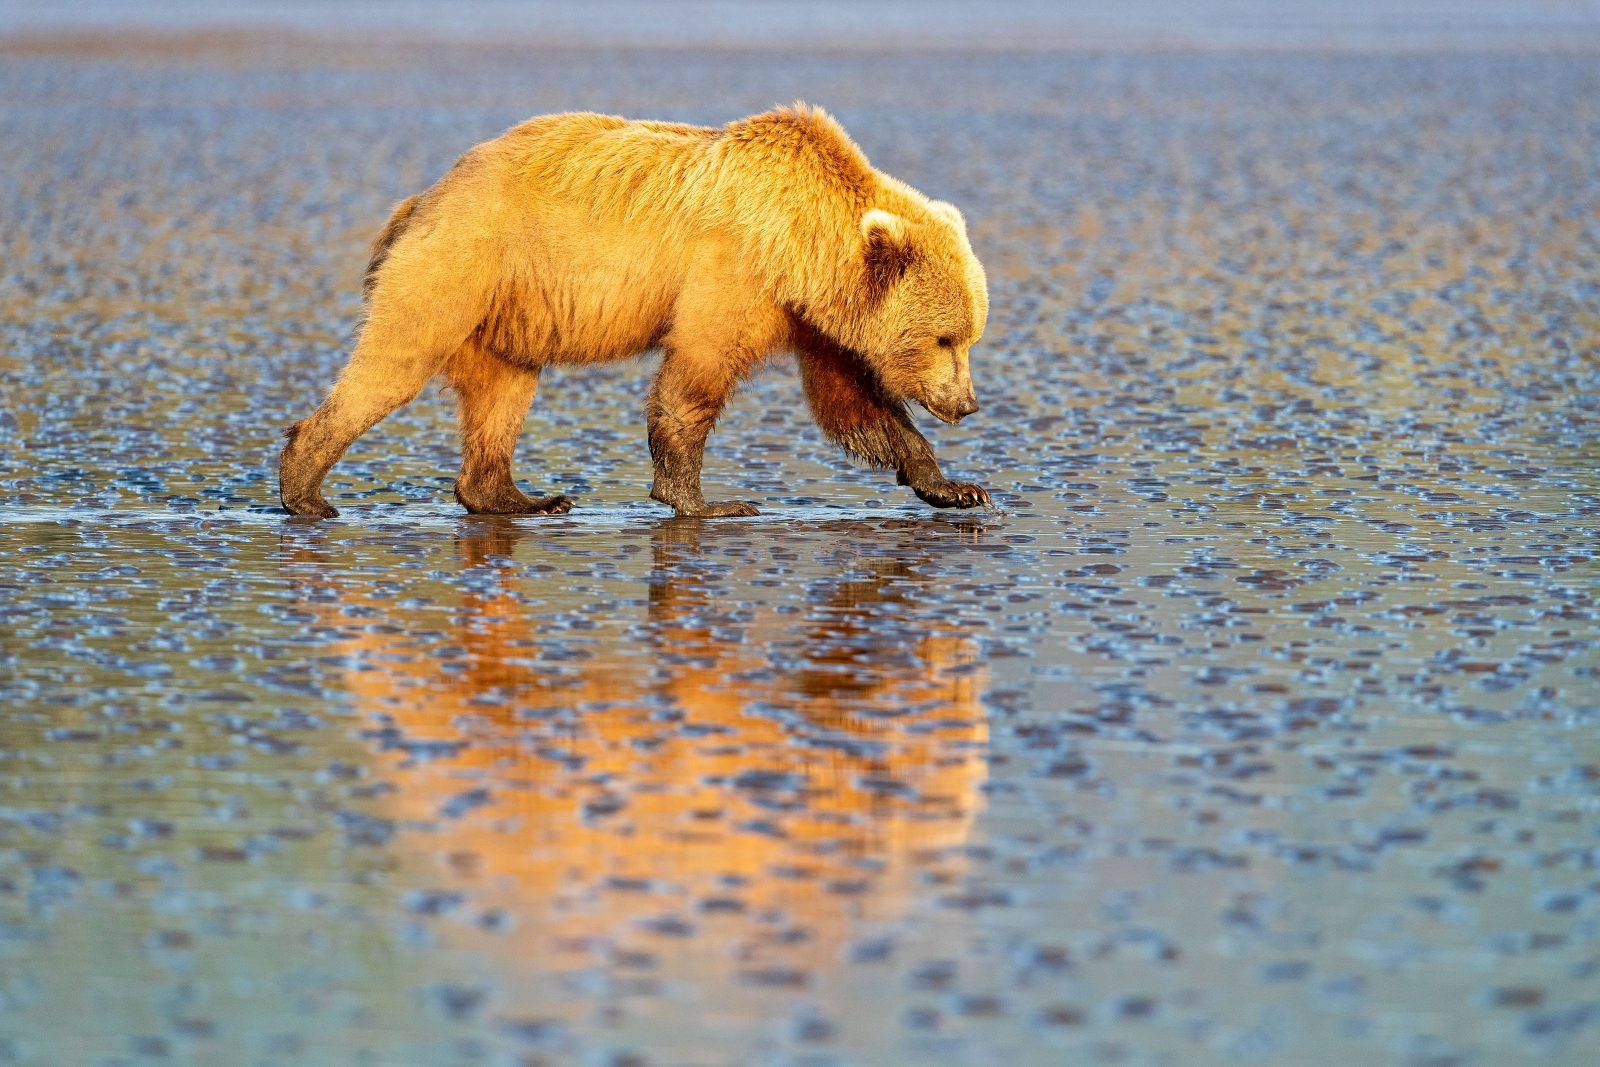 Coastal brown bear searching for clams